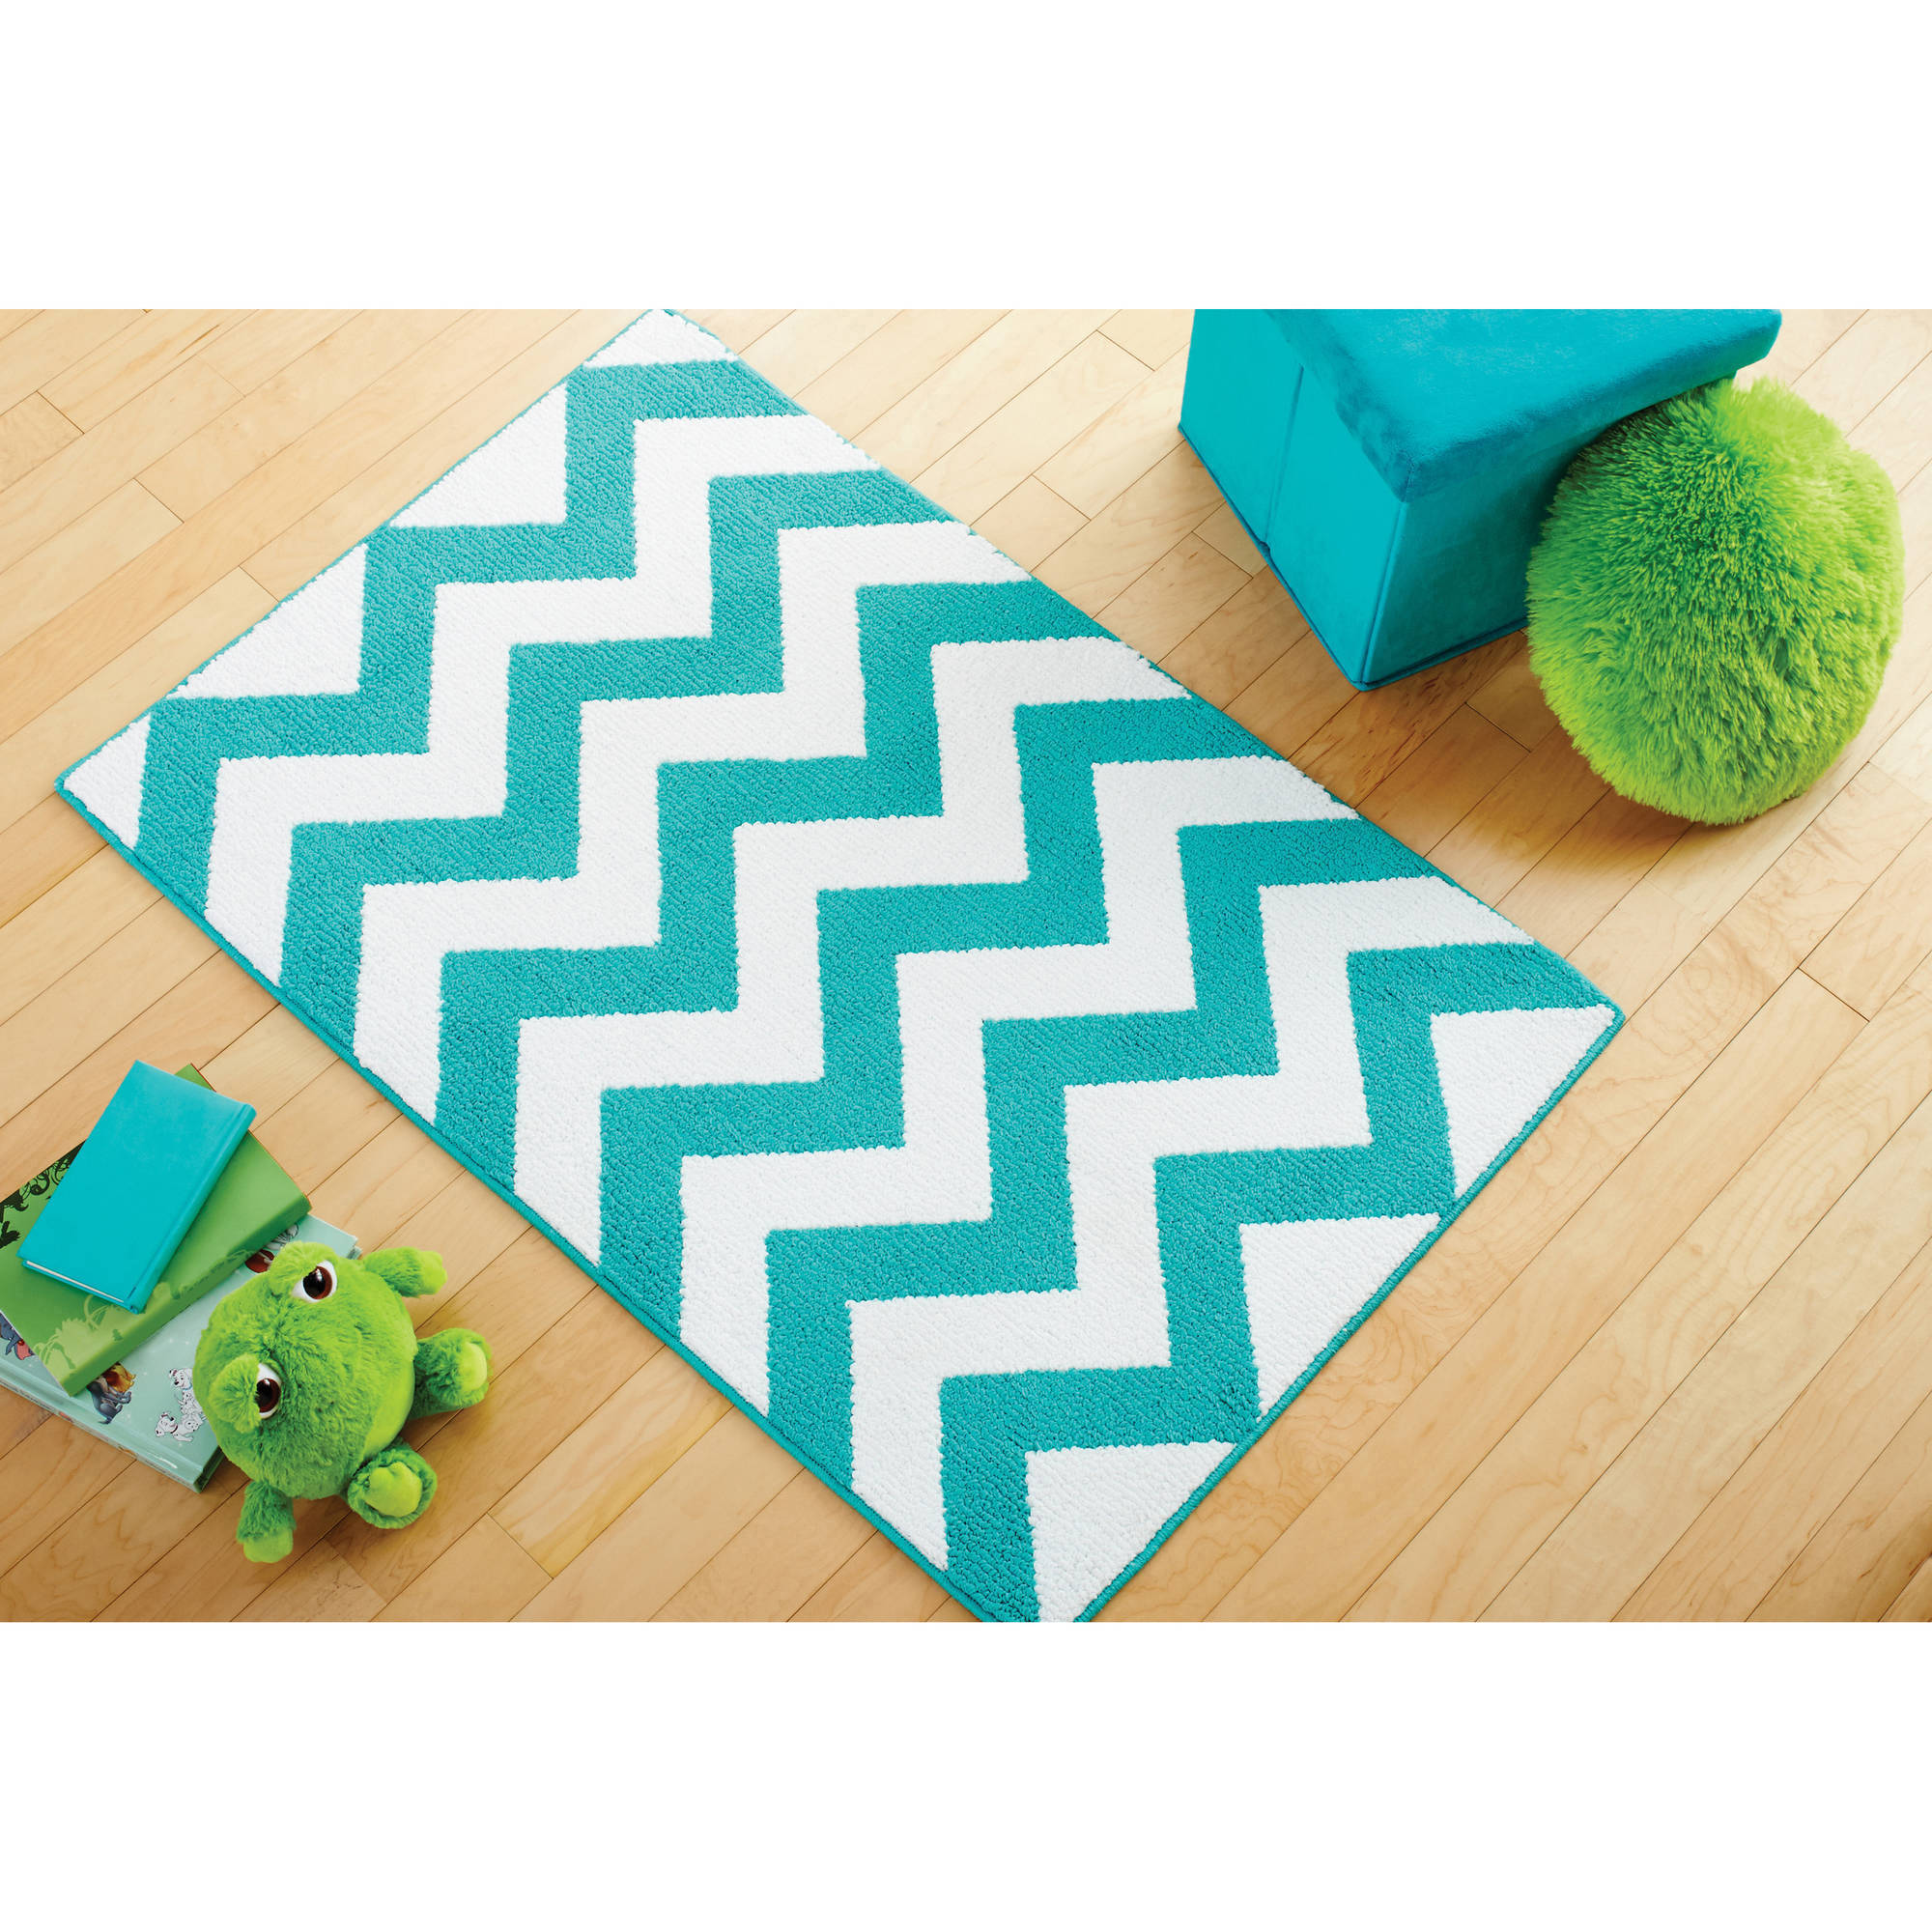 Mainstays Kids Chevron Pattern Rug Available In Multiple Colors And Sizes